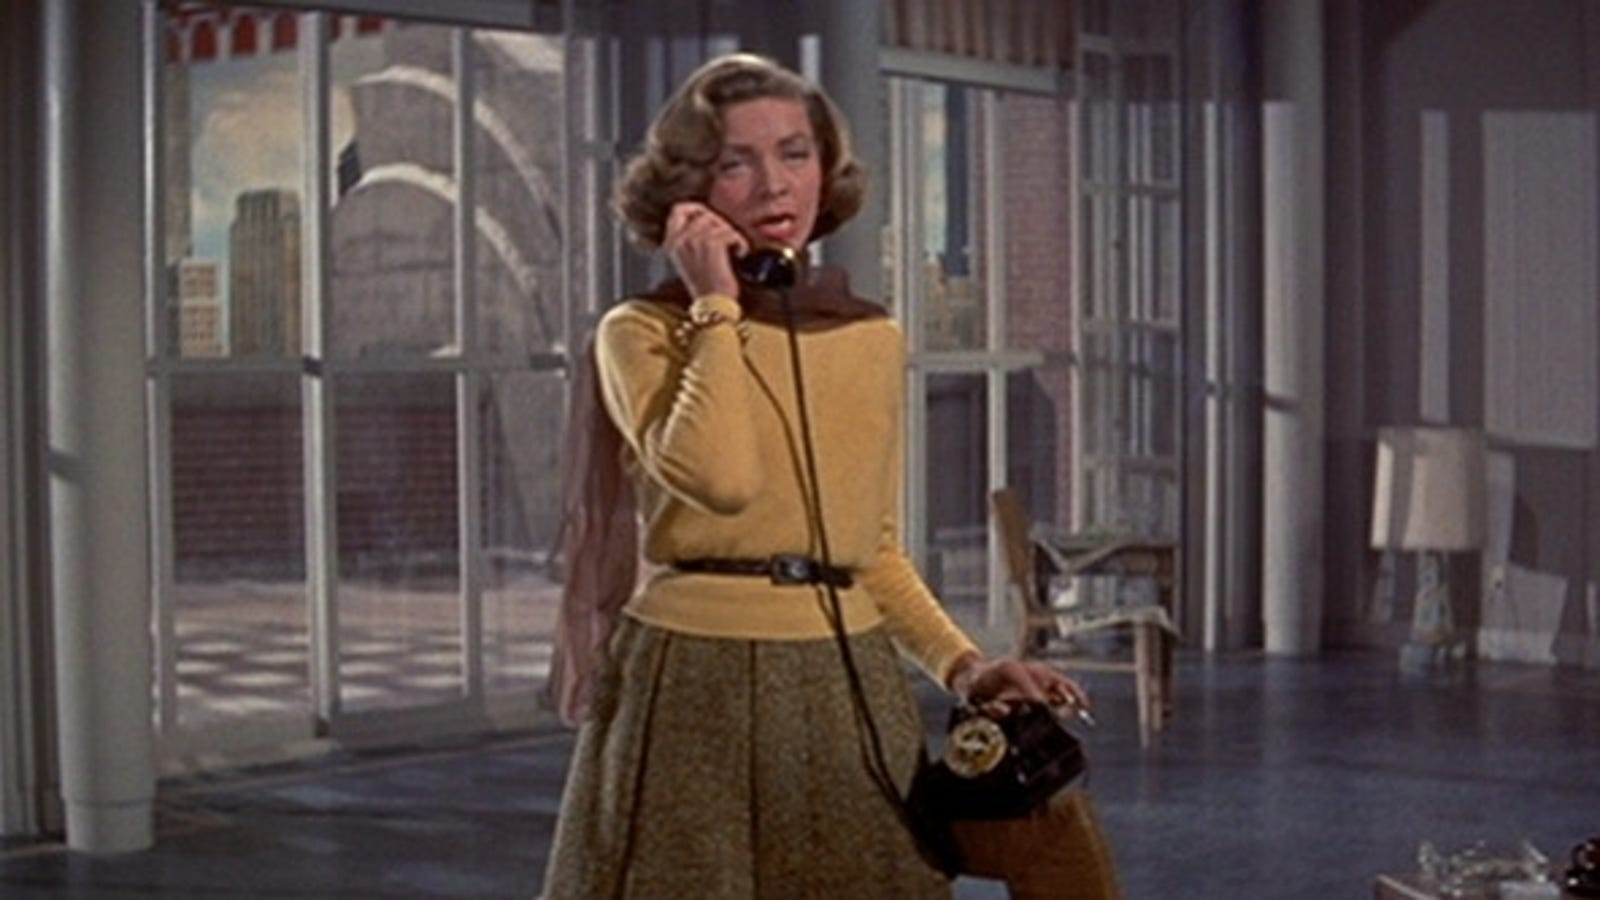 Lauren Bacall Starred Alongside Groundbreaking Tech In This 1953 Film